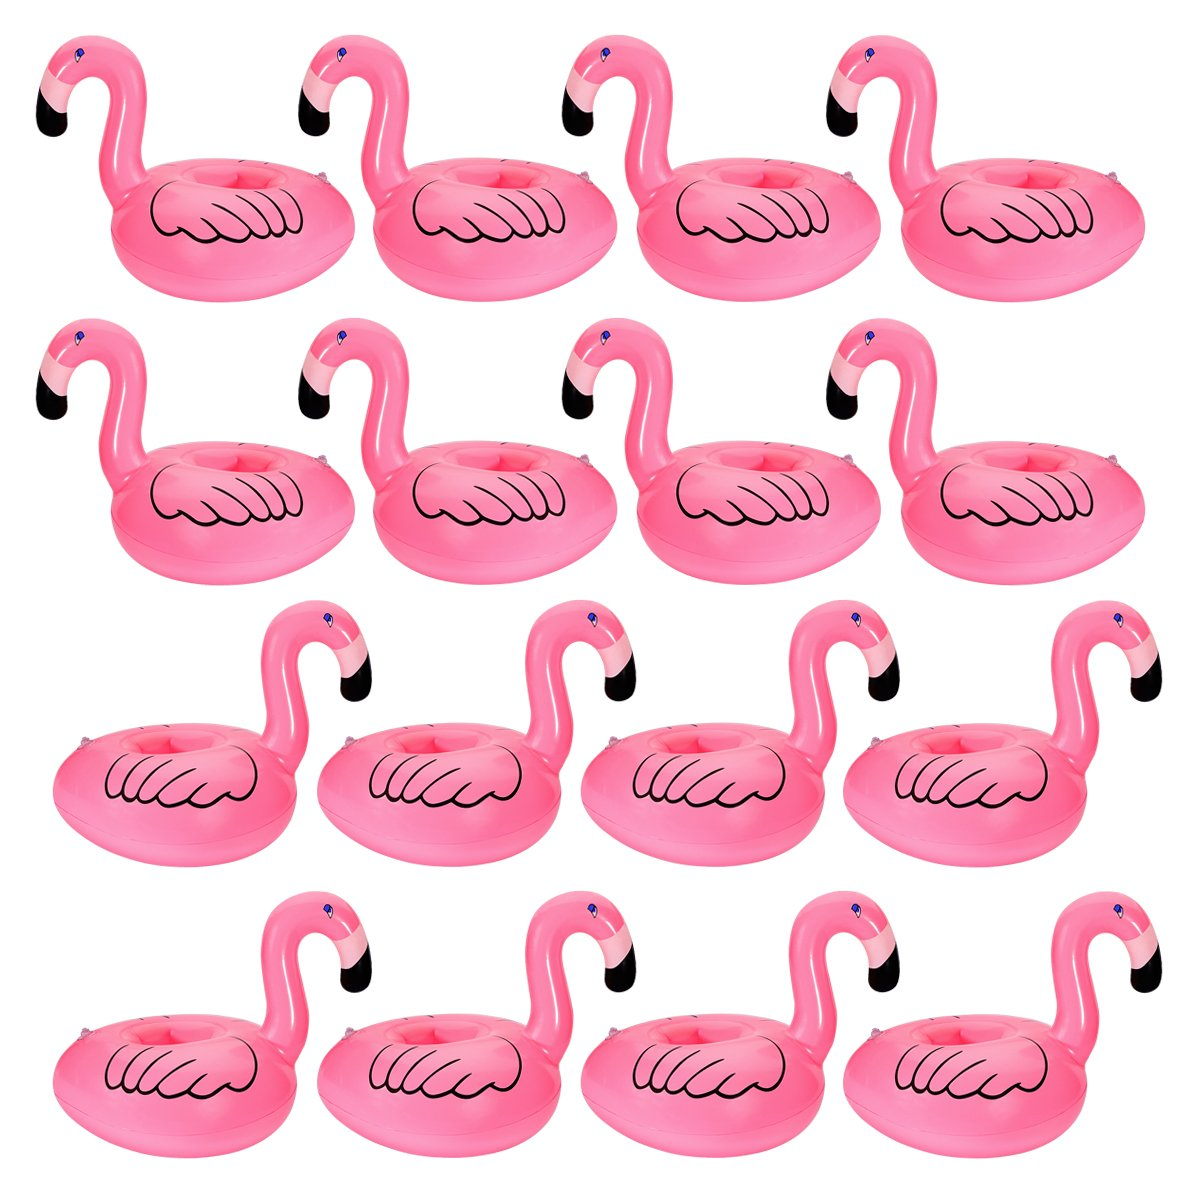 Inflatable Flamingo Coasters Cup Drink Holder (16 Pieces)